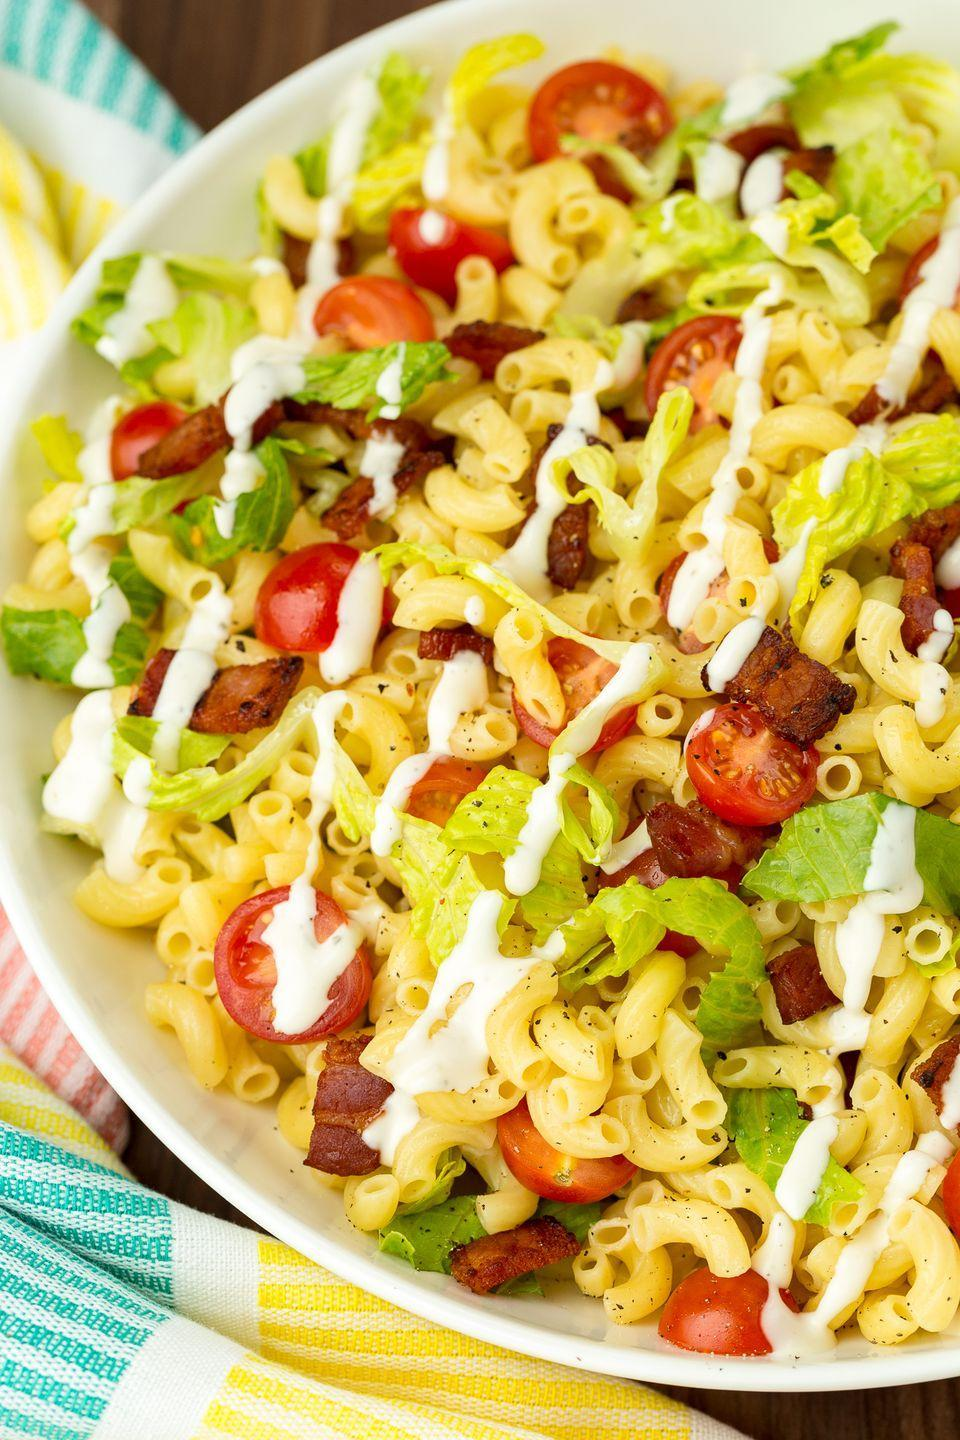 """<p>There's Ranch dressing in there.</p><p>Get the recipe from <a href=""""https://www.delish.com/cooking/recipe-ideas/recipes/a47222/blt-pasta-salad-trifle-recipe/"""" rel=""""nofollow noopener"""" target=""""_blank"""" data-ylk=""""slk:Delish"""" class=""""link rapid-noclick-resp"""">Delish</a>.</p>"""